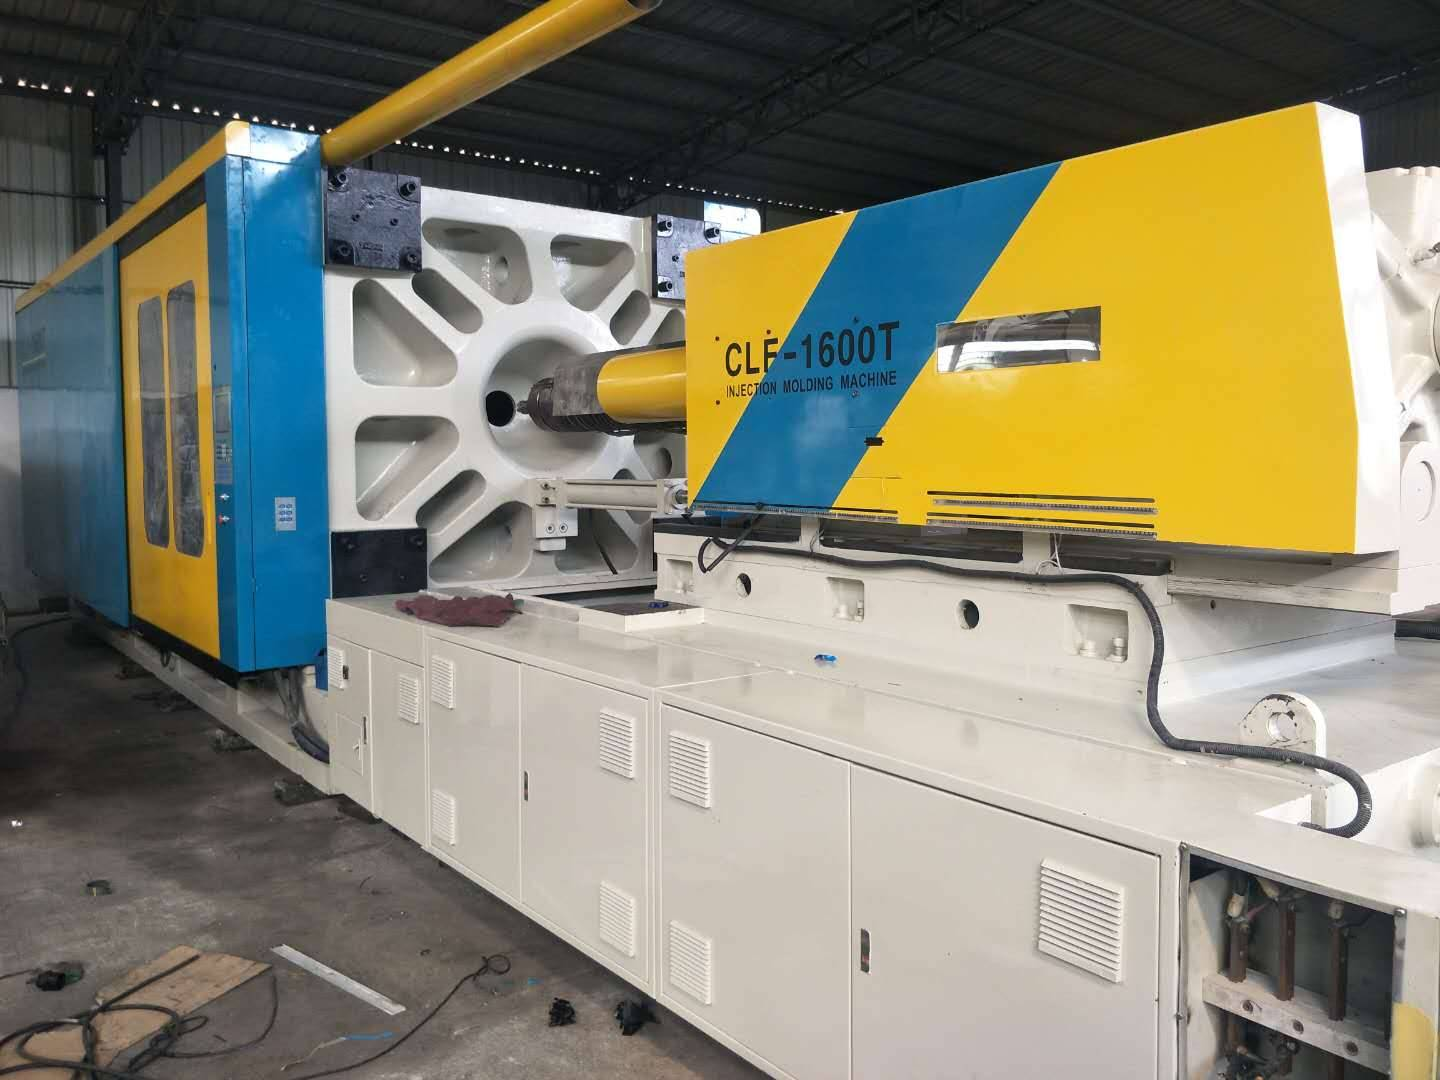 Chuan Lih Fa CLF-1600 (servo) used Injection Molding Machine Featured Image